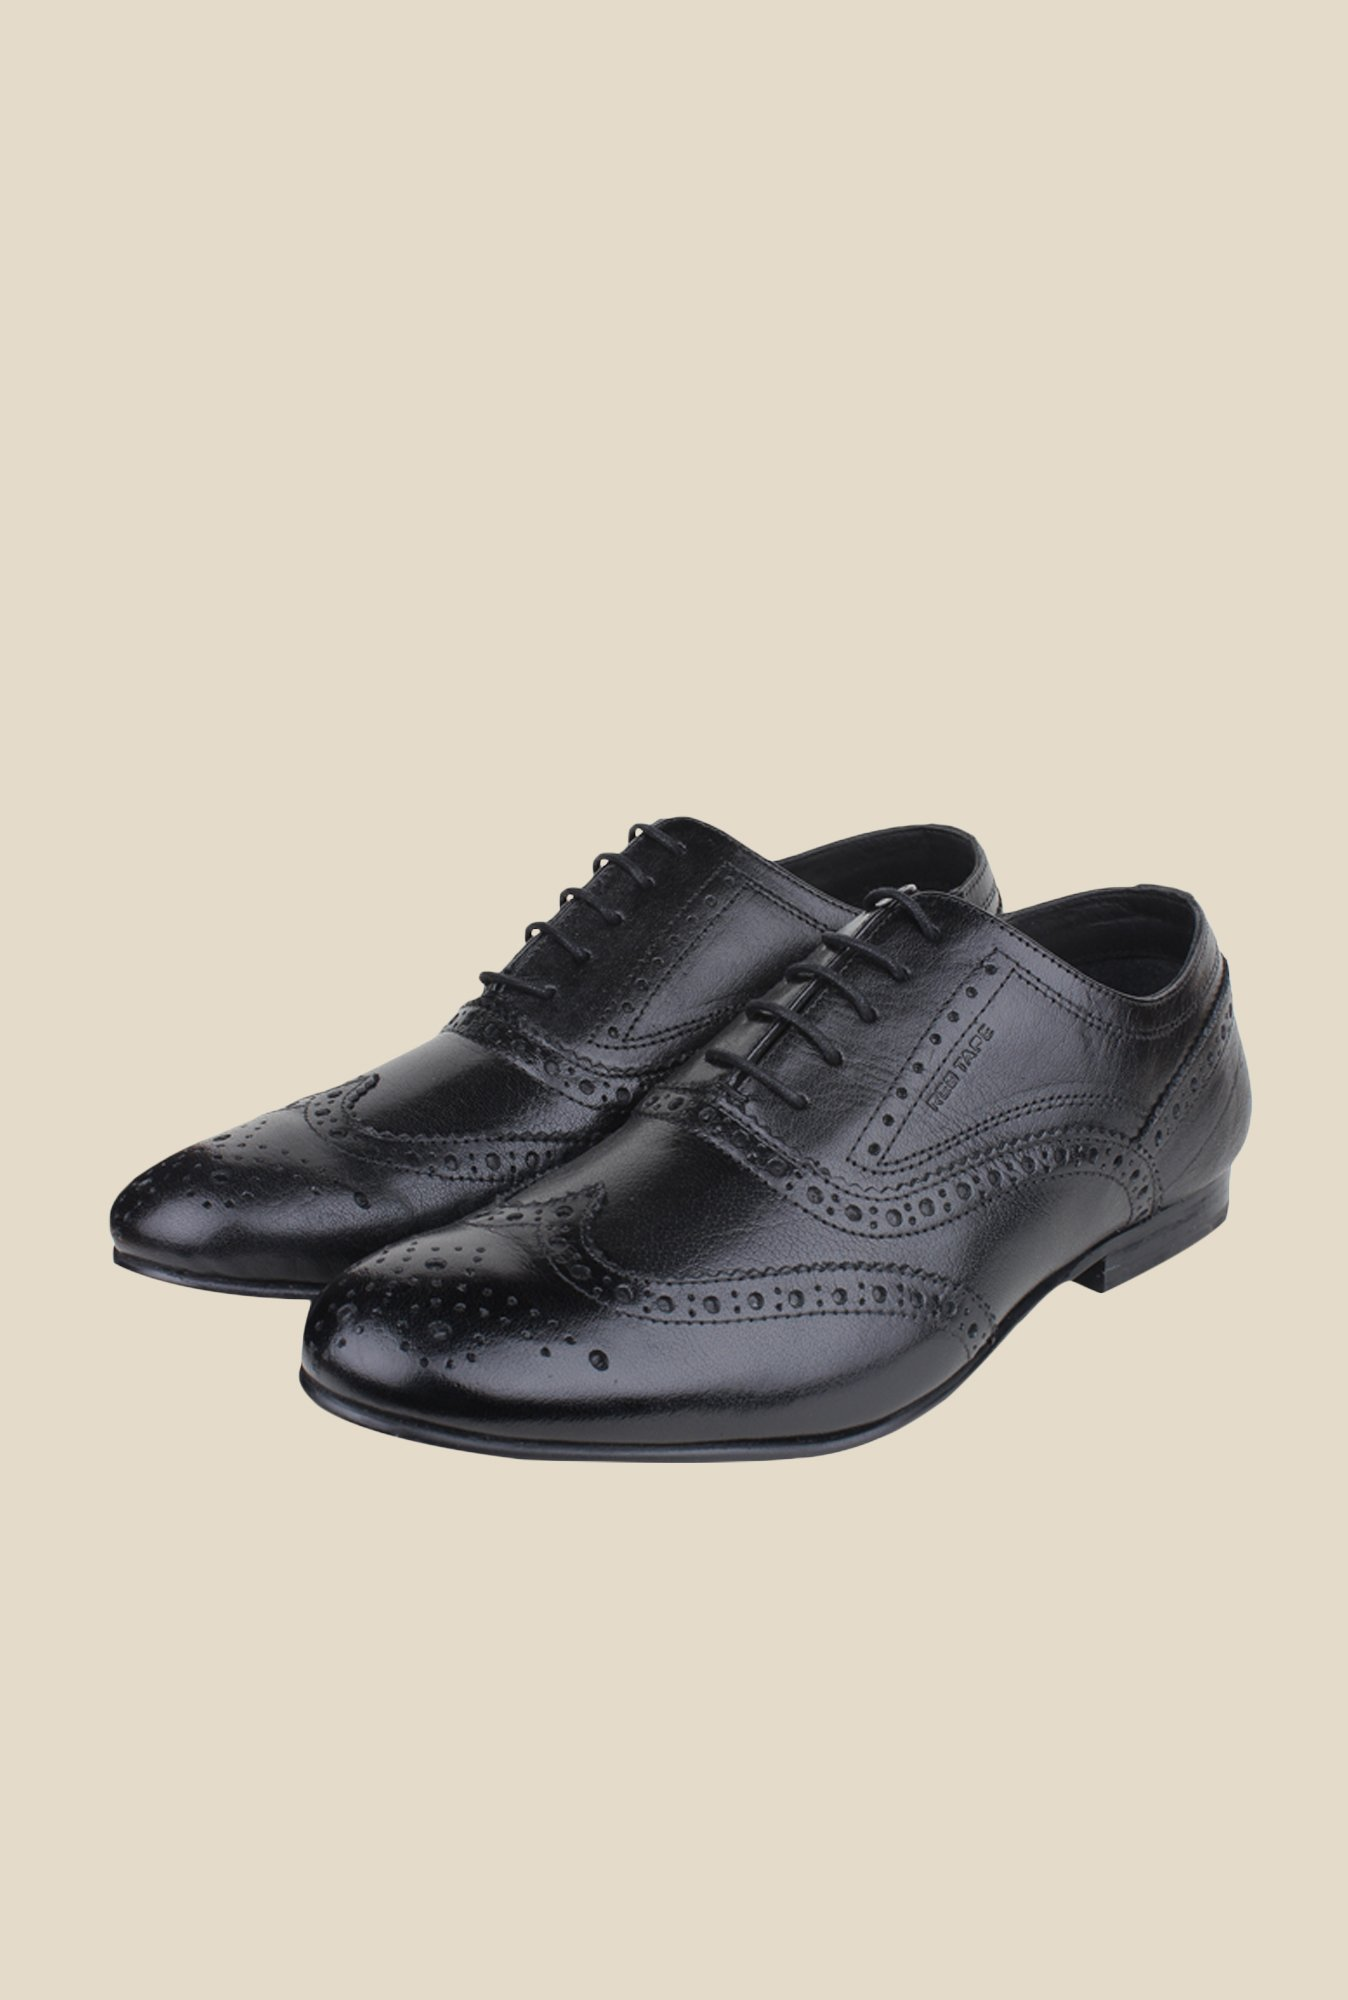 Red Tape Black Brogue Shoes